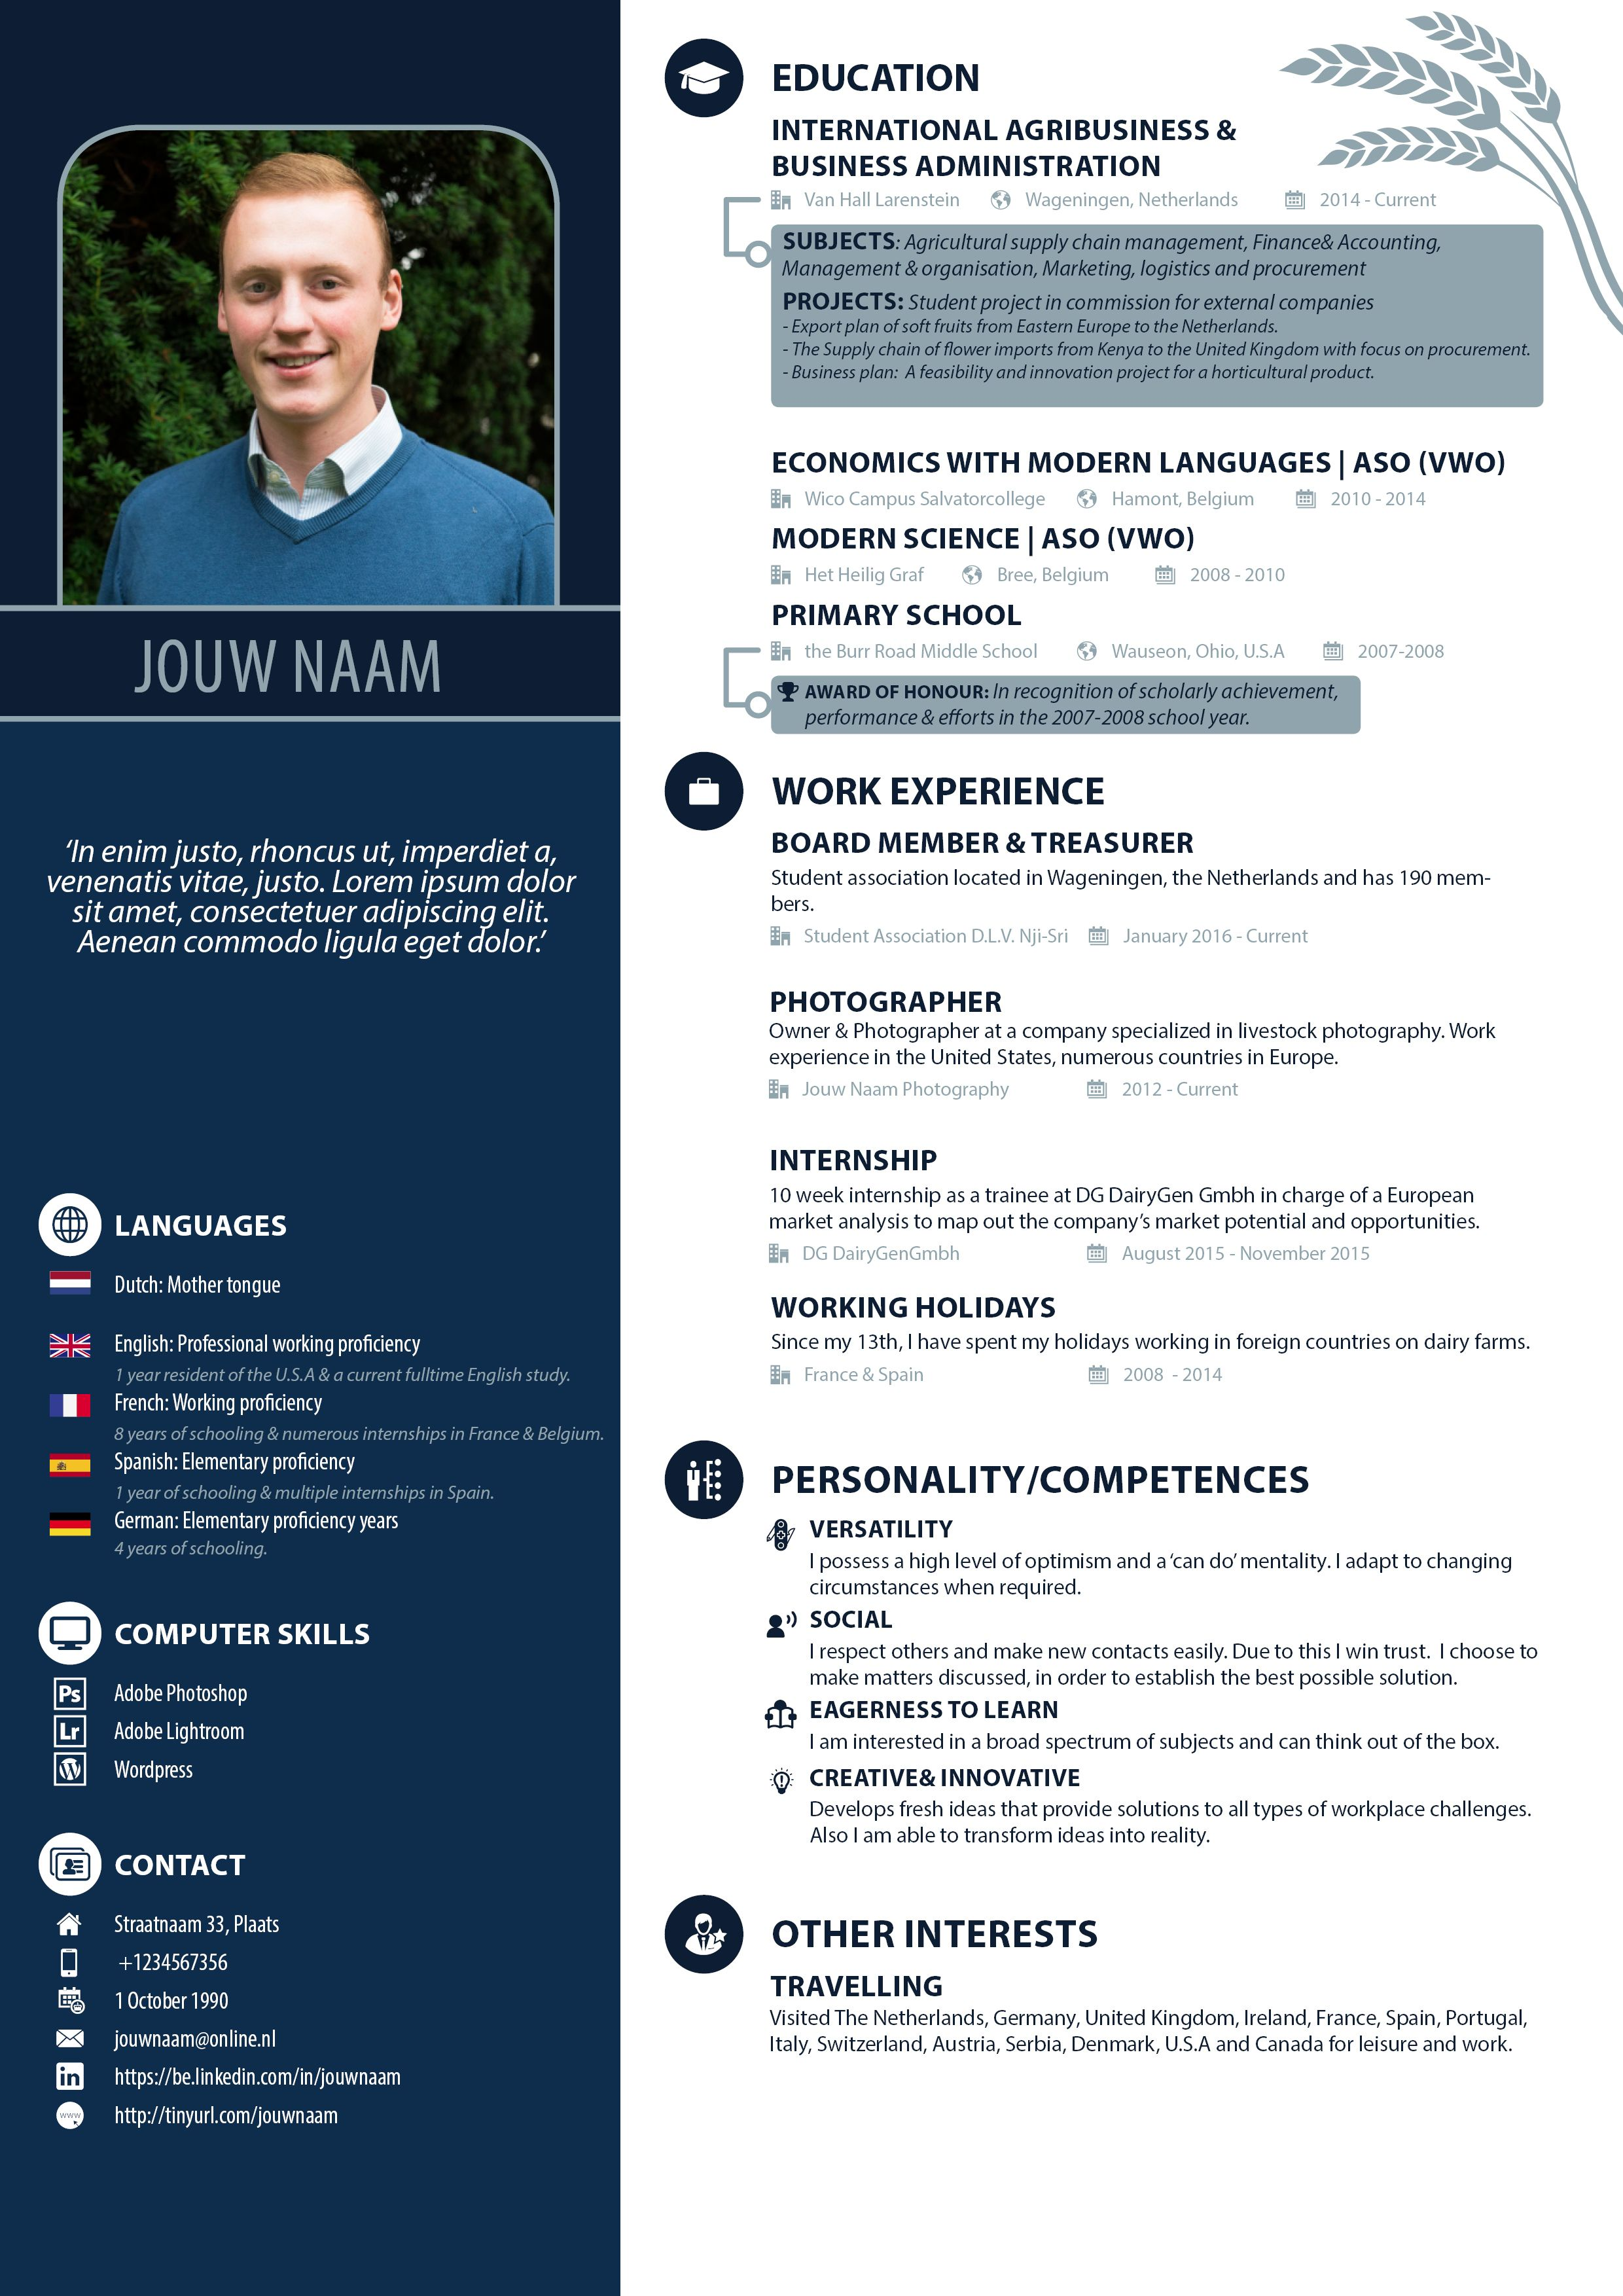 Cv Template With Photo Creative Resume Template Word Professional Resume Template Instant Download Marketing Resume Executive Resume